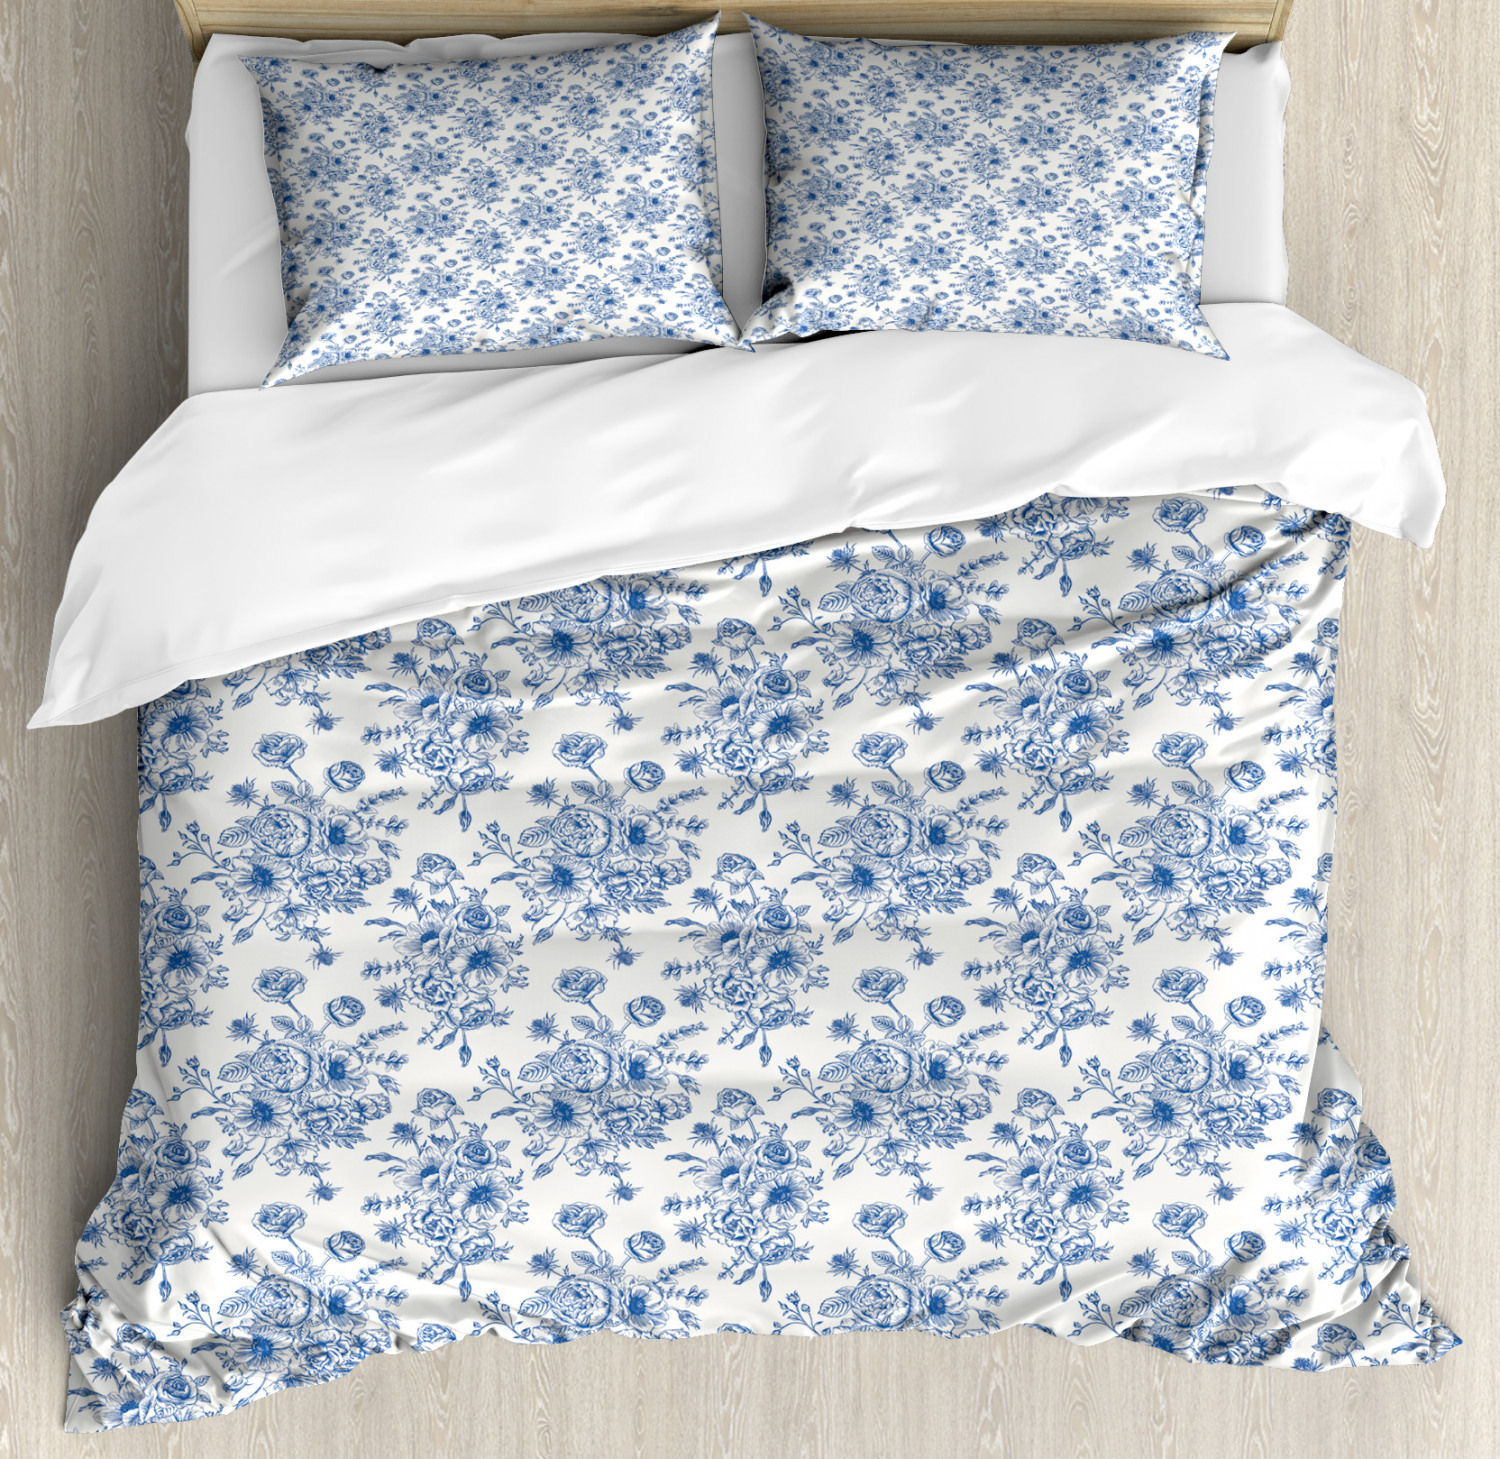 blue and white king size duvet cover set sketchy roses anemones and eustoma in blue shades romantic vintage bouquet decorative 3 piece bedding set